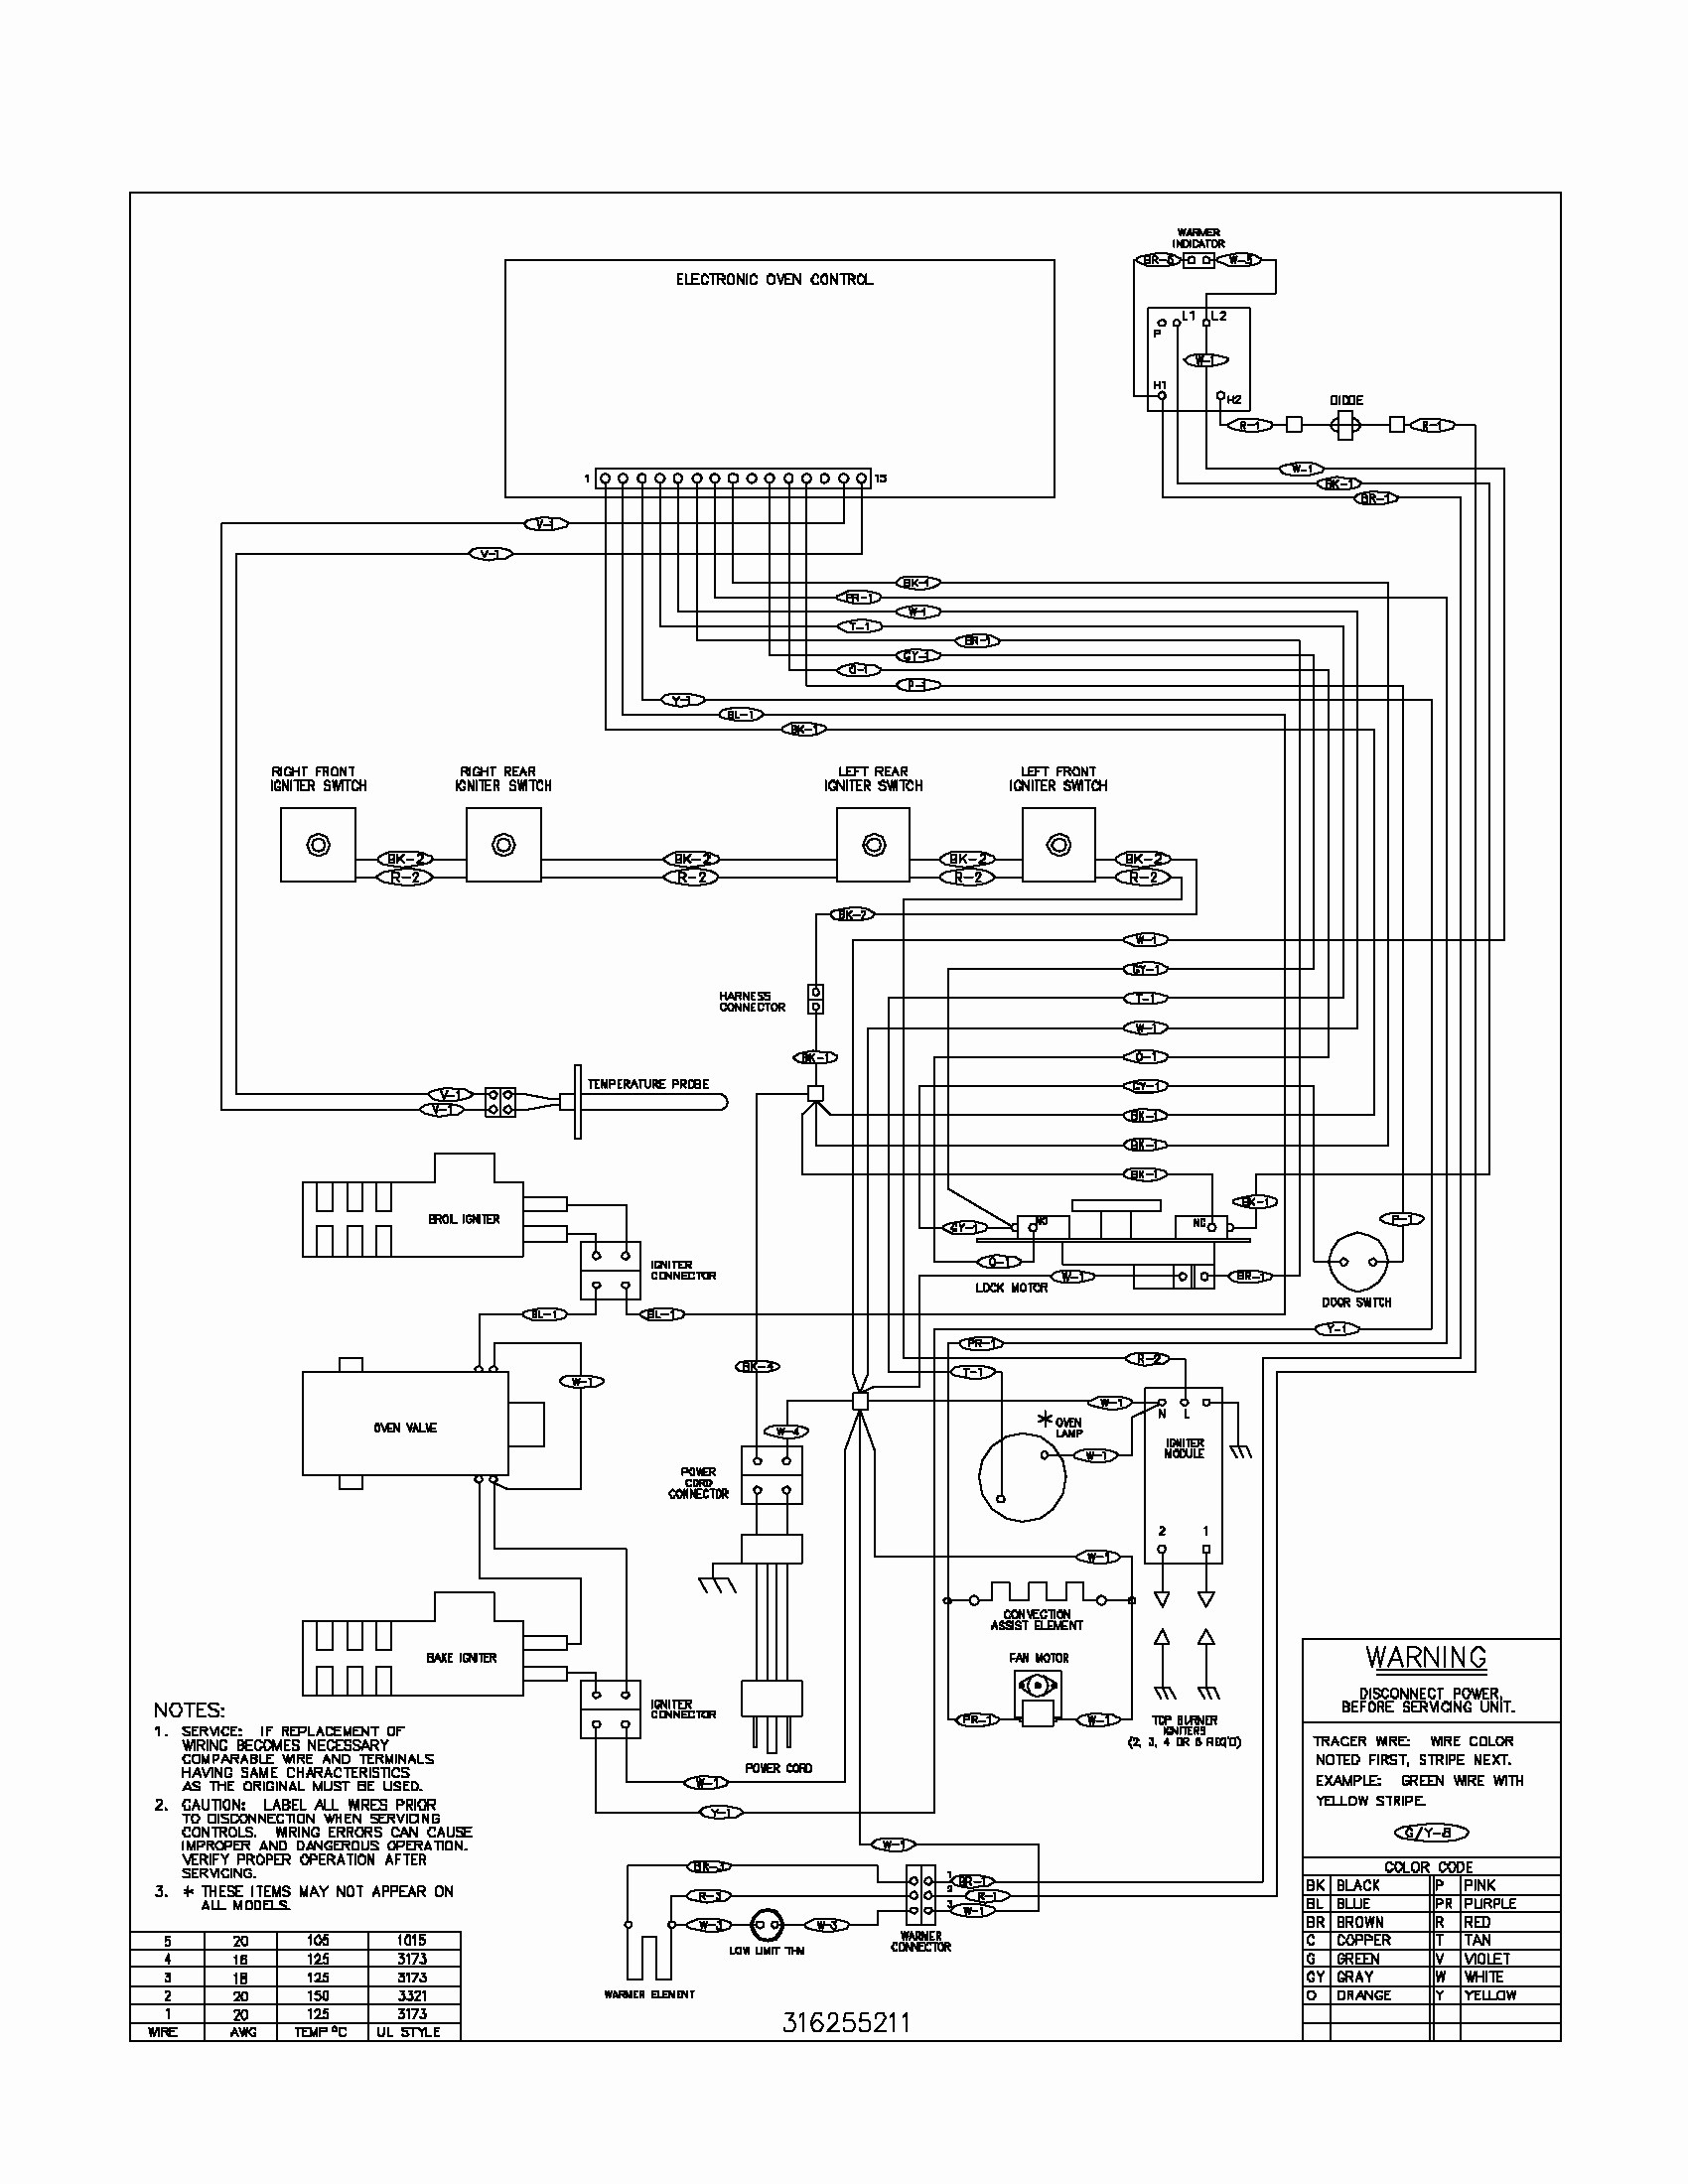 diy powder coating oven wiring diagram Download-powder coat oven wiring diagram gallery electrical wiring diagram rh metroroomph Electric Oven Welding Oven 12-s